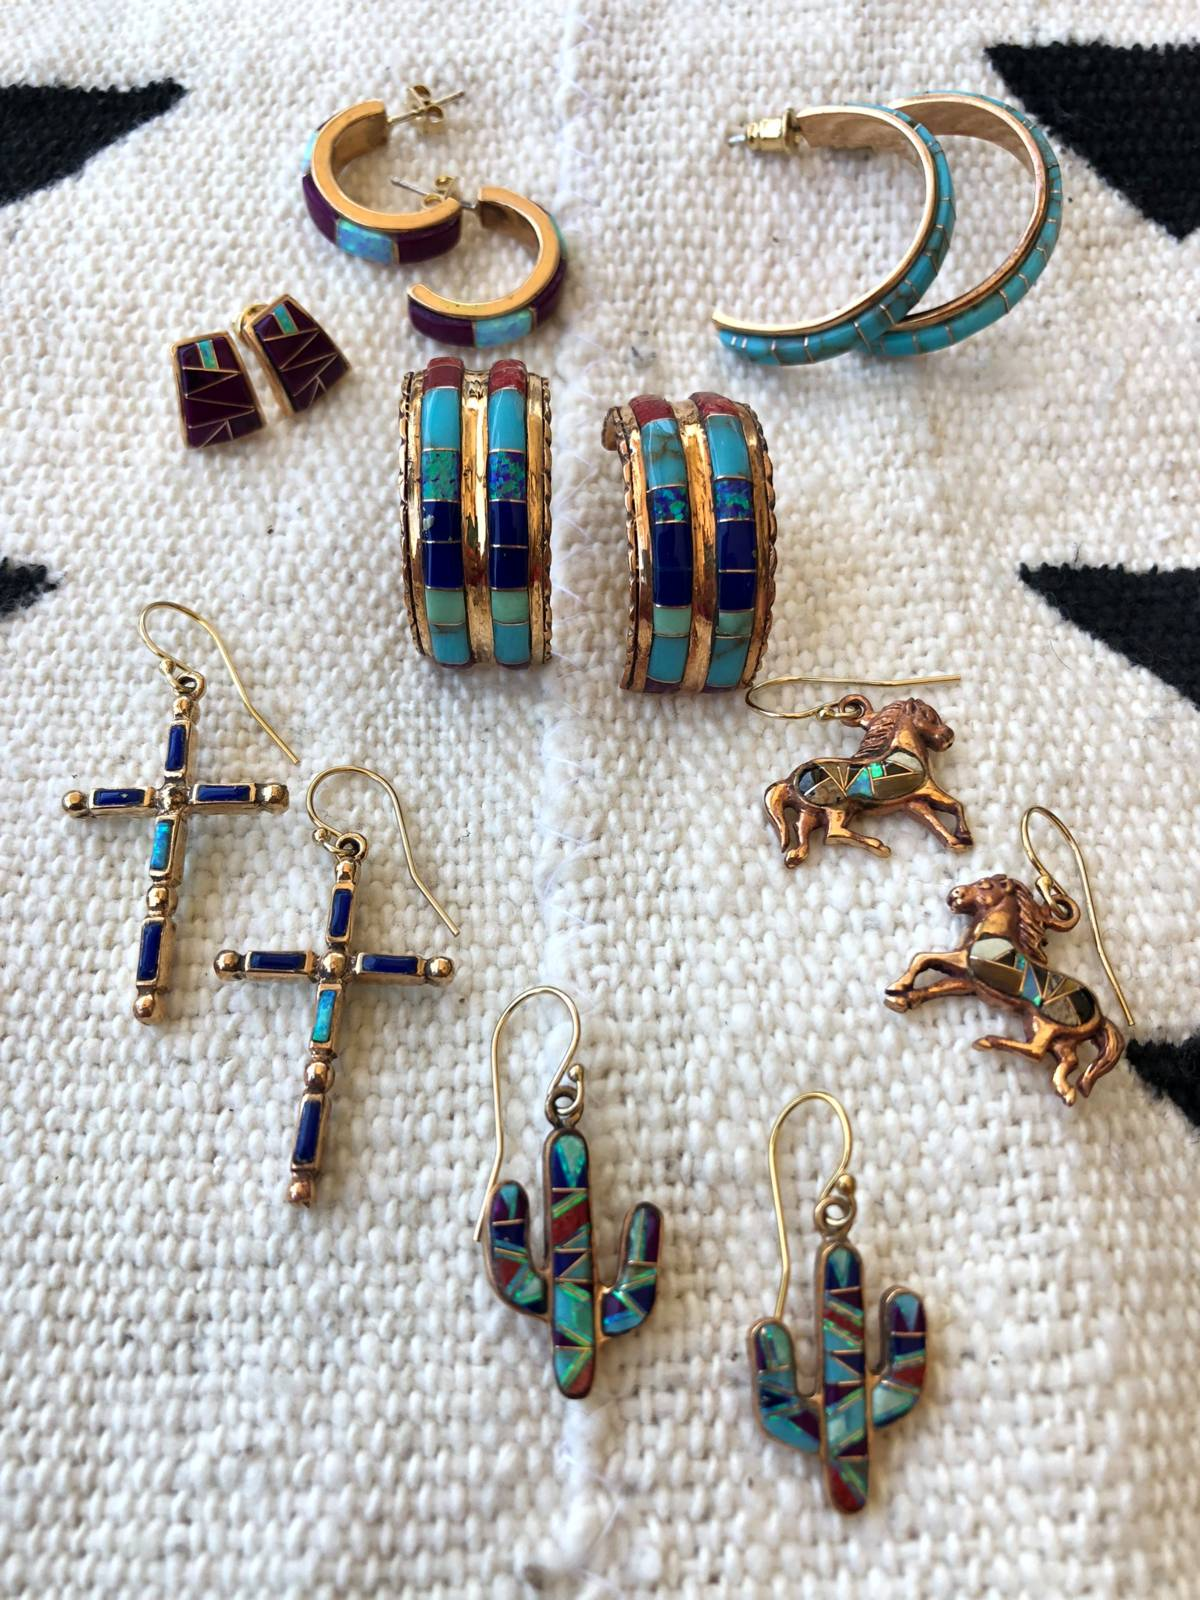 The Mojave Earrings